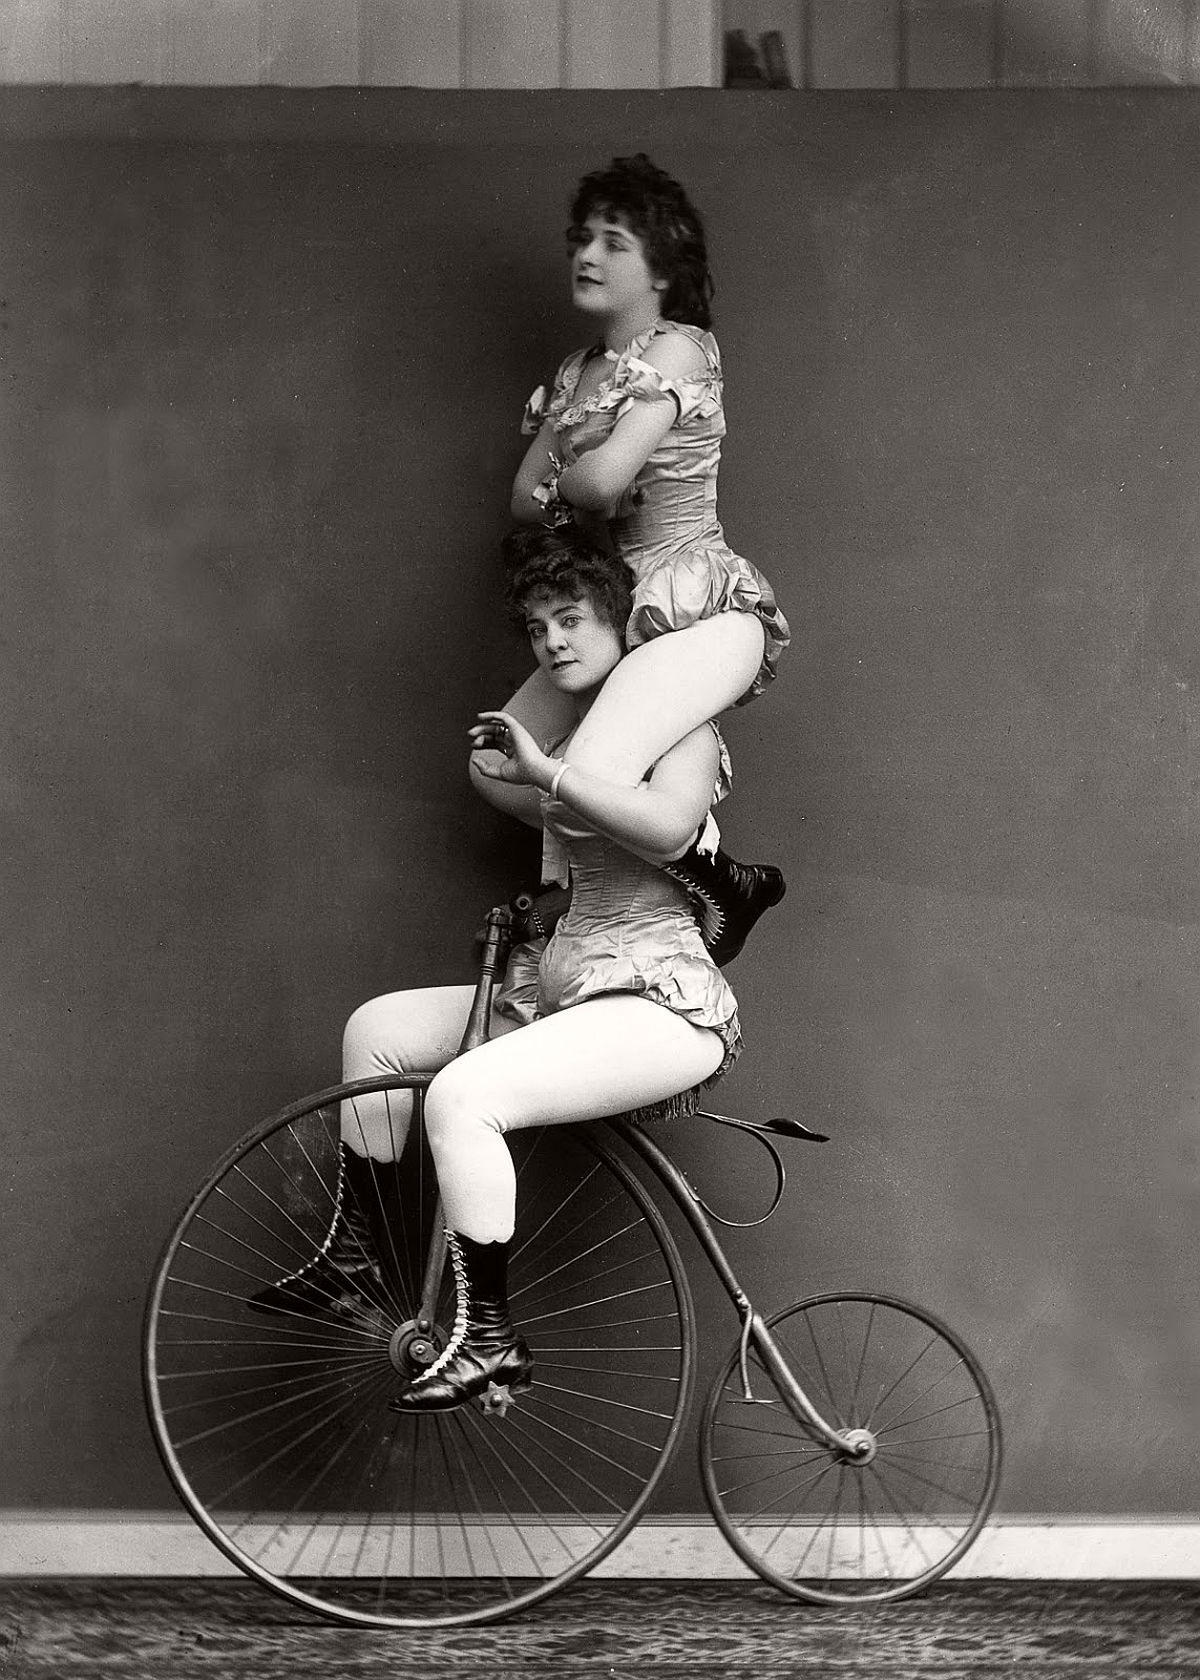 Victorian cyclists perform a balancing act on a penny-farthing, 1891. (Getty Images)